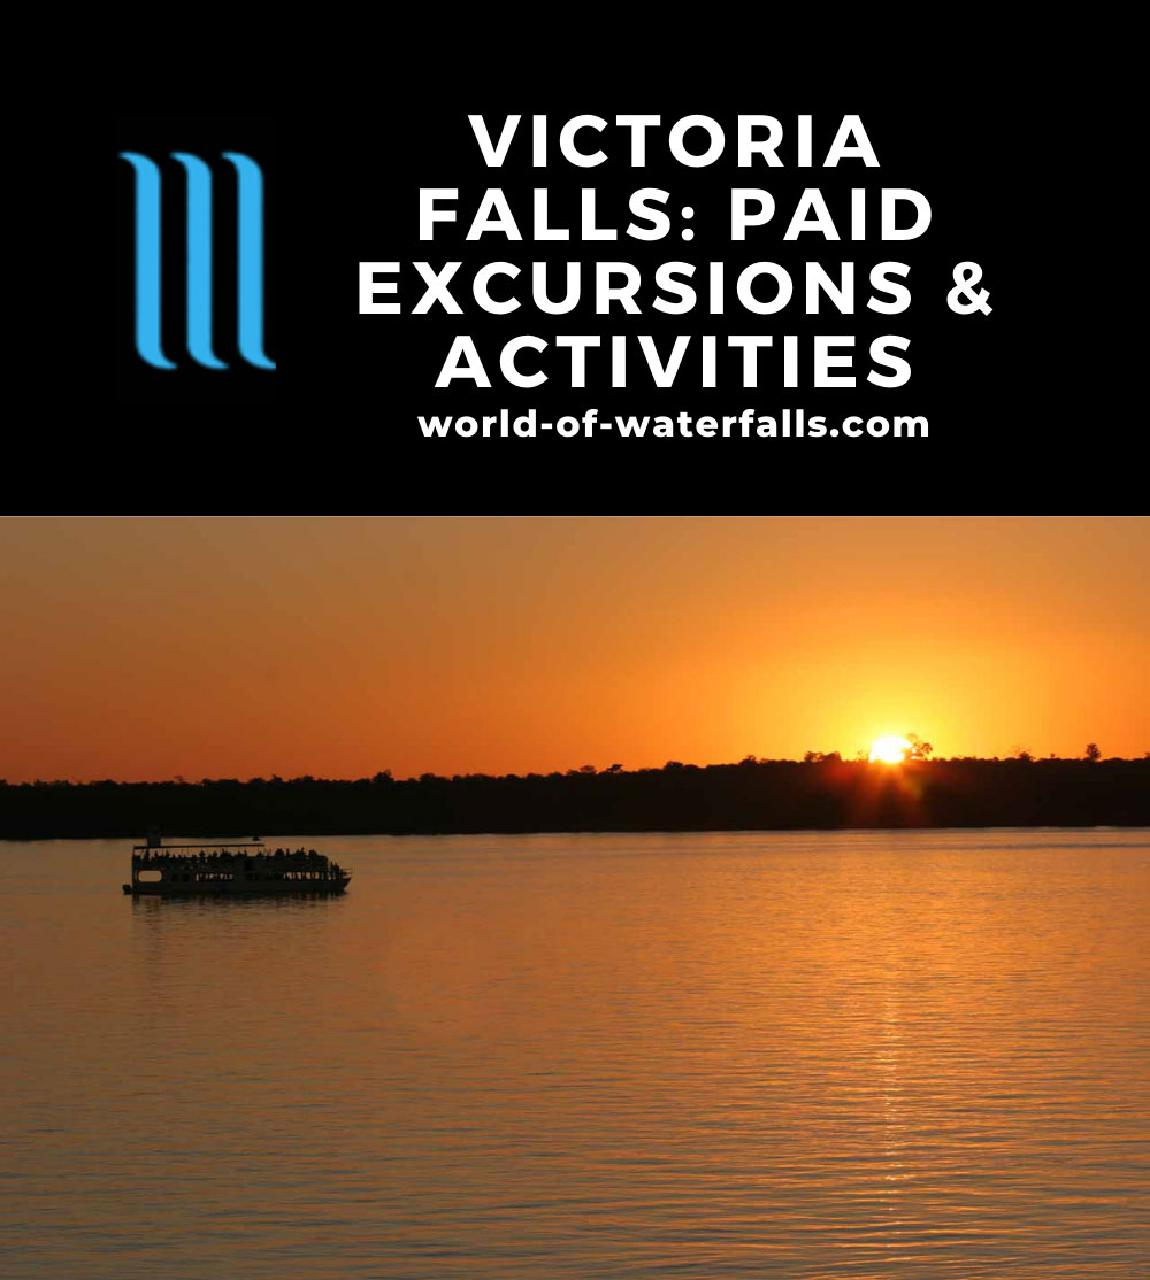 Victoria Falls: Paid Excursions and Activities